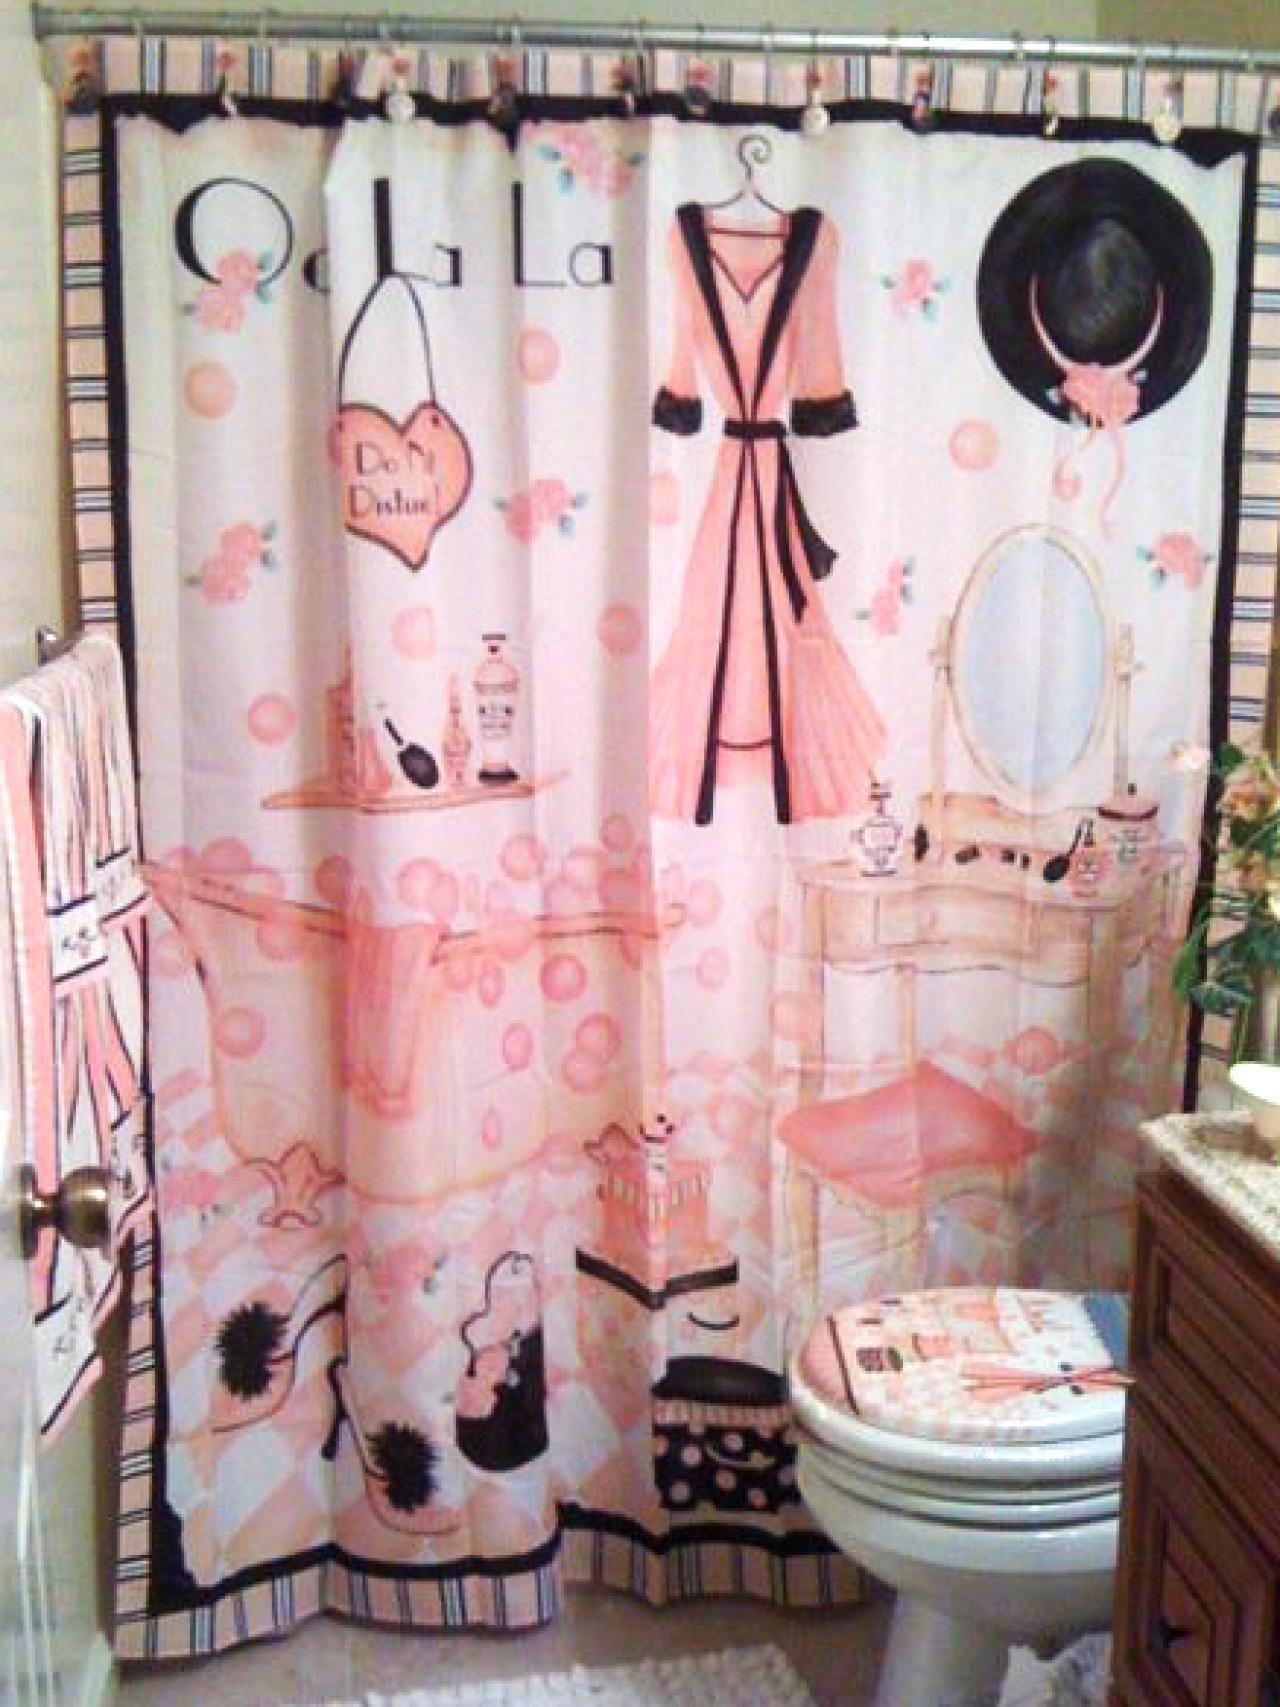 Cute Girly Shower Curtains Girly Girl Shower Curtains Shower Curtains Ideas